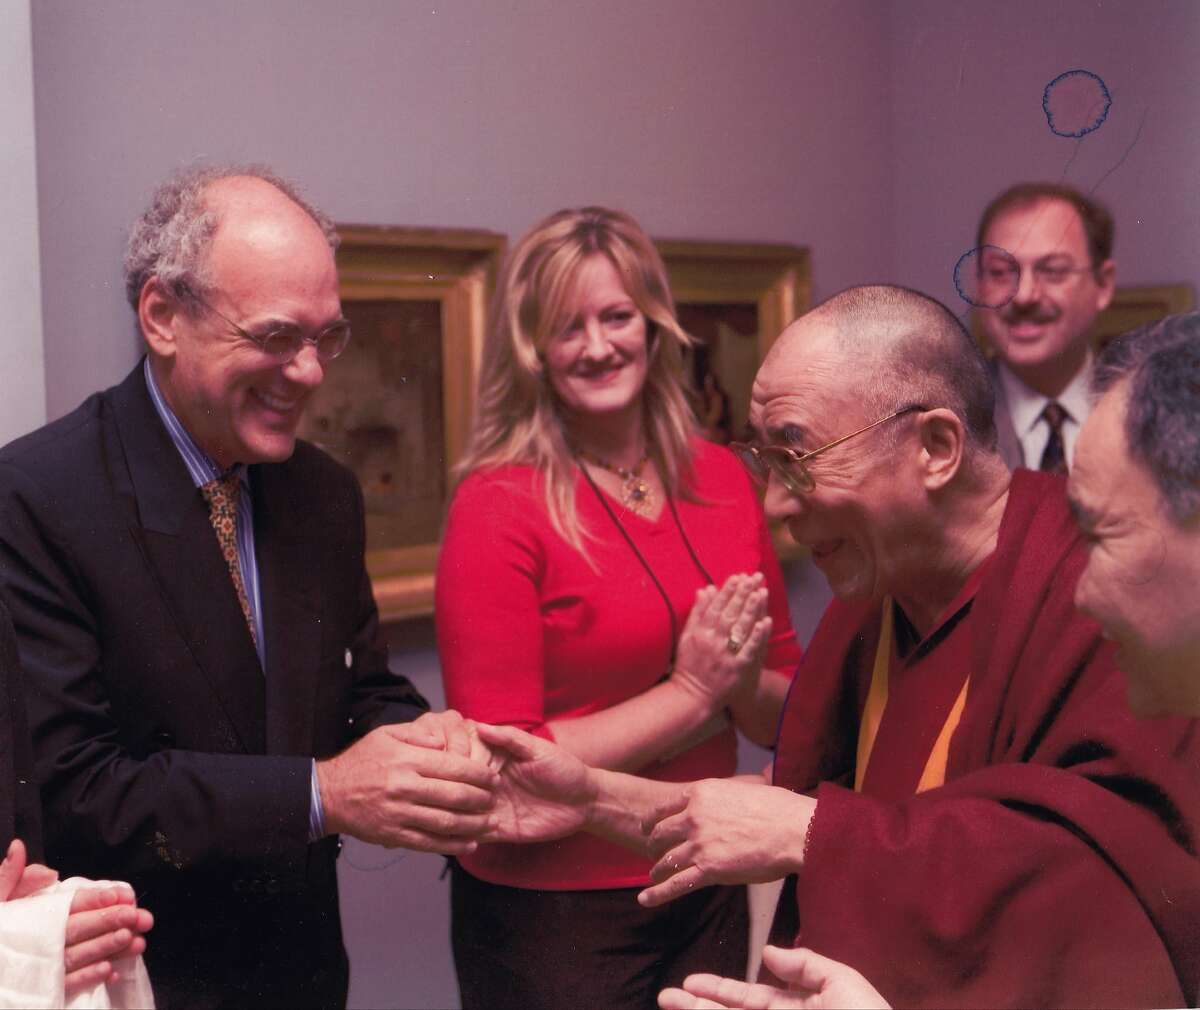 Shep Gordon and the Dalai Lama, in an archival photo from SUPERMENSCH.